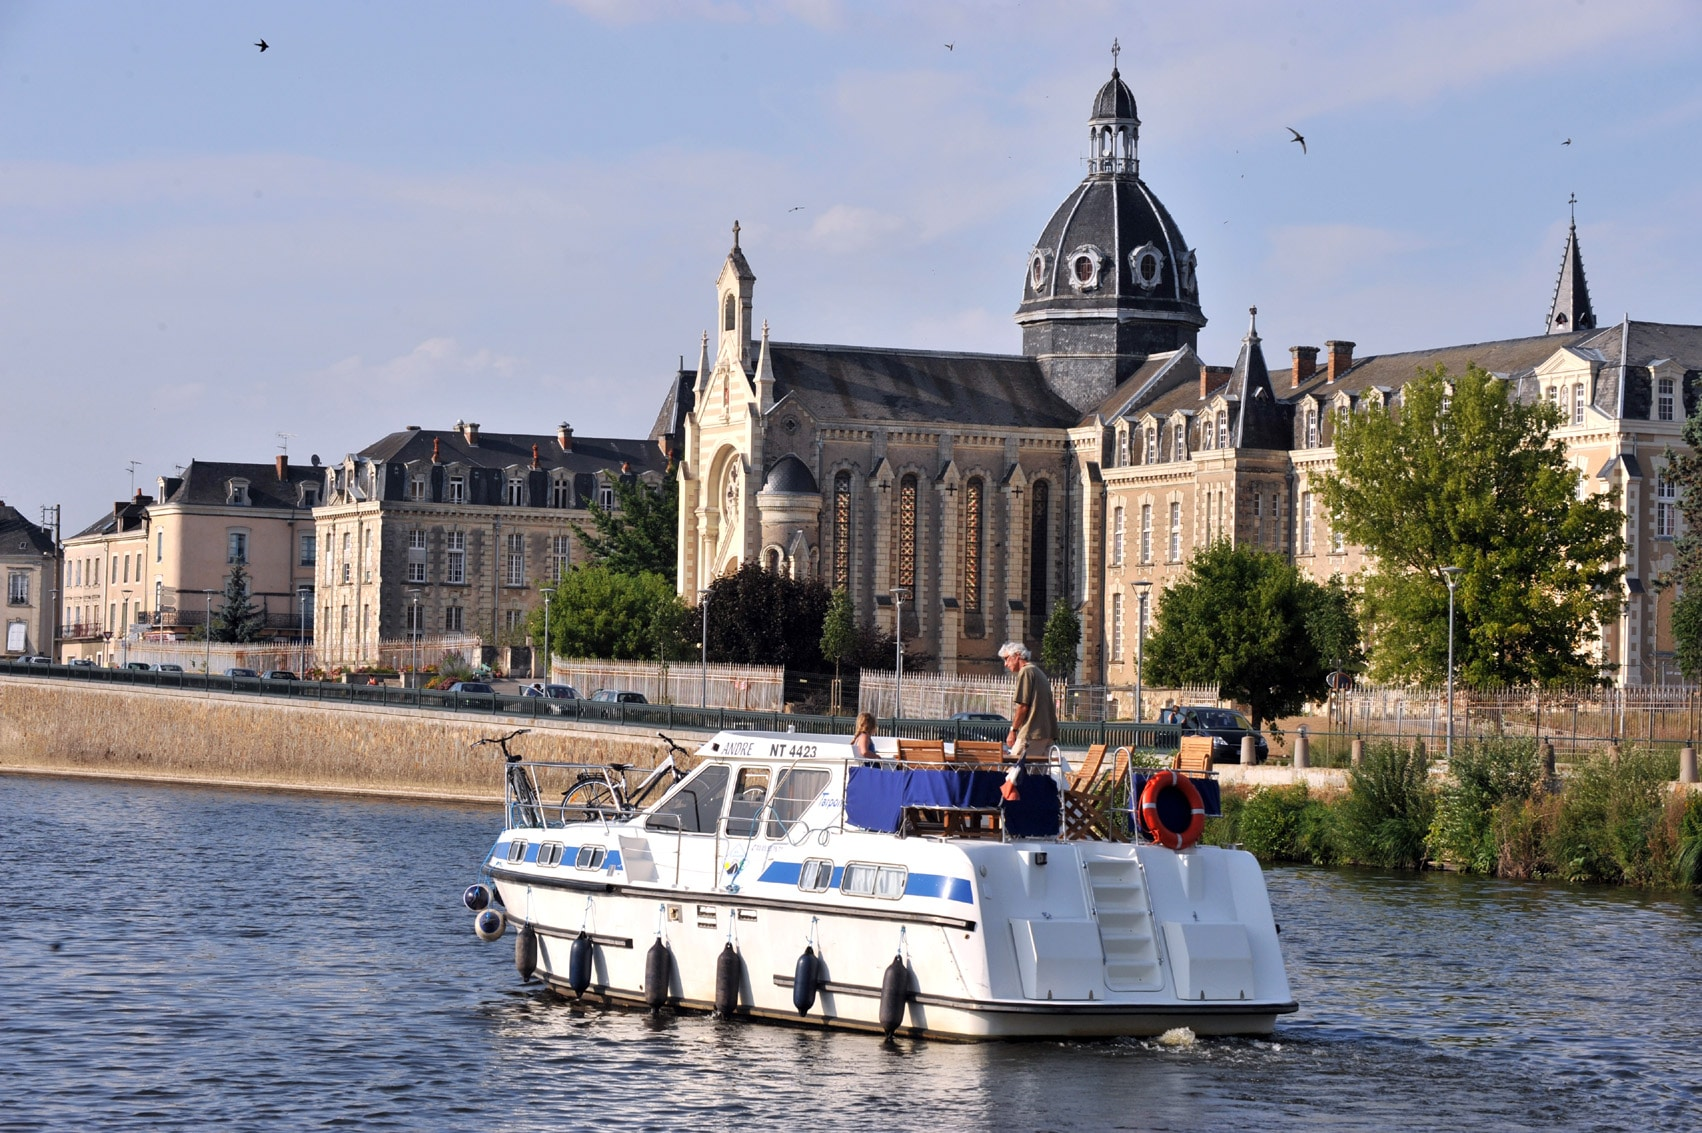 Neuville Sur Sarthe Le Mans licence-free boats, an alternative form of tourism